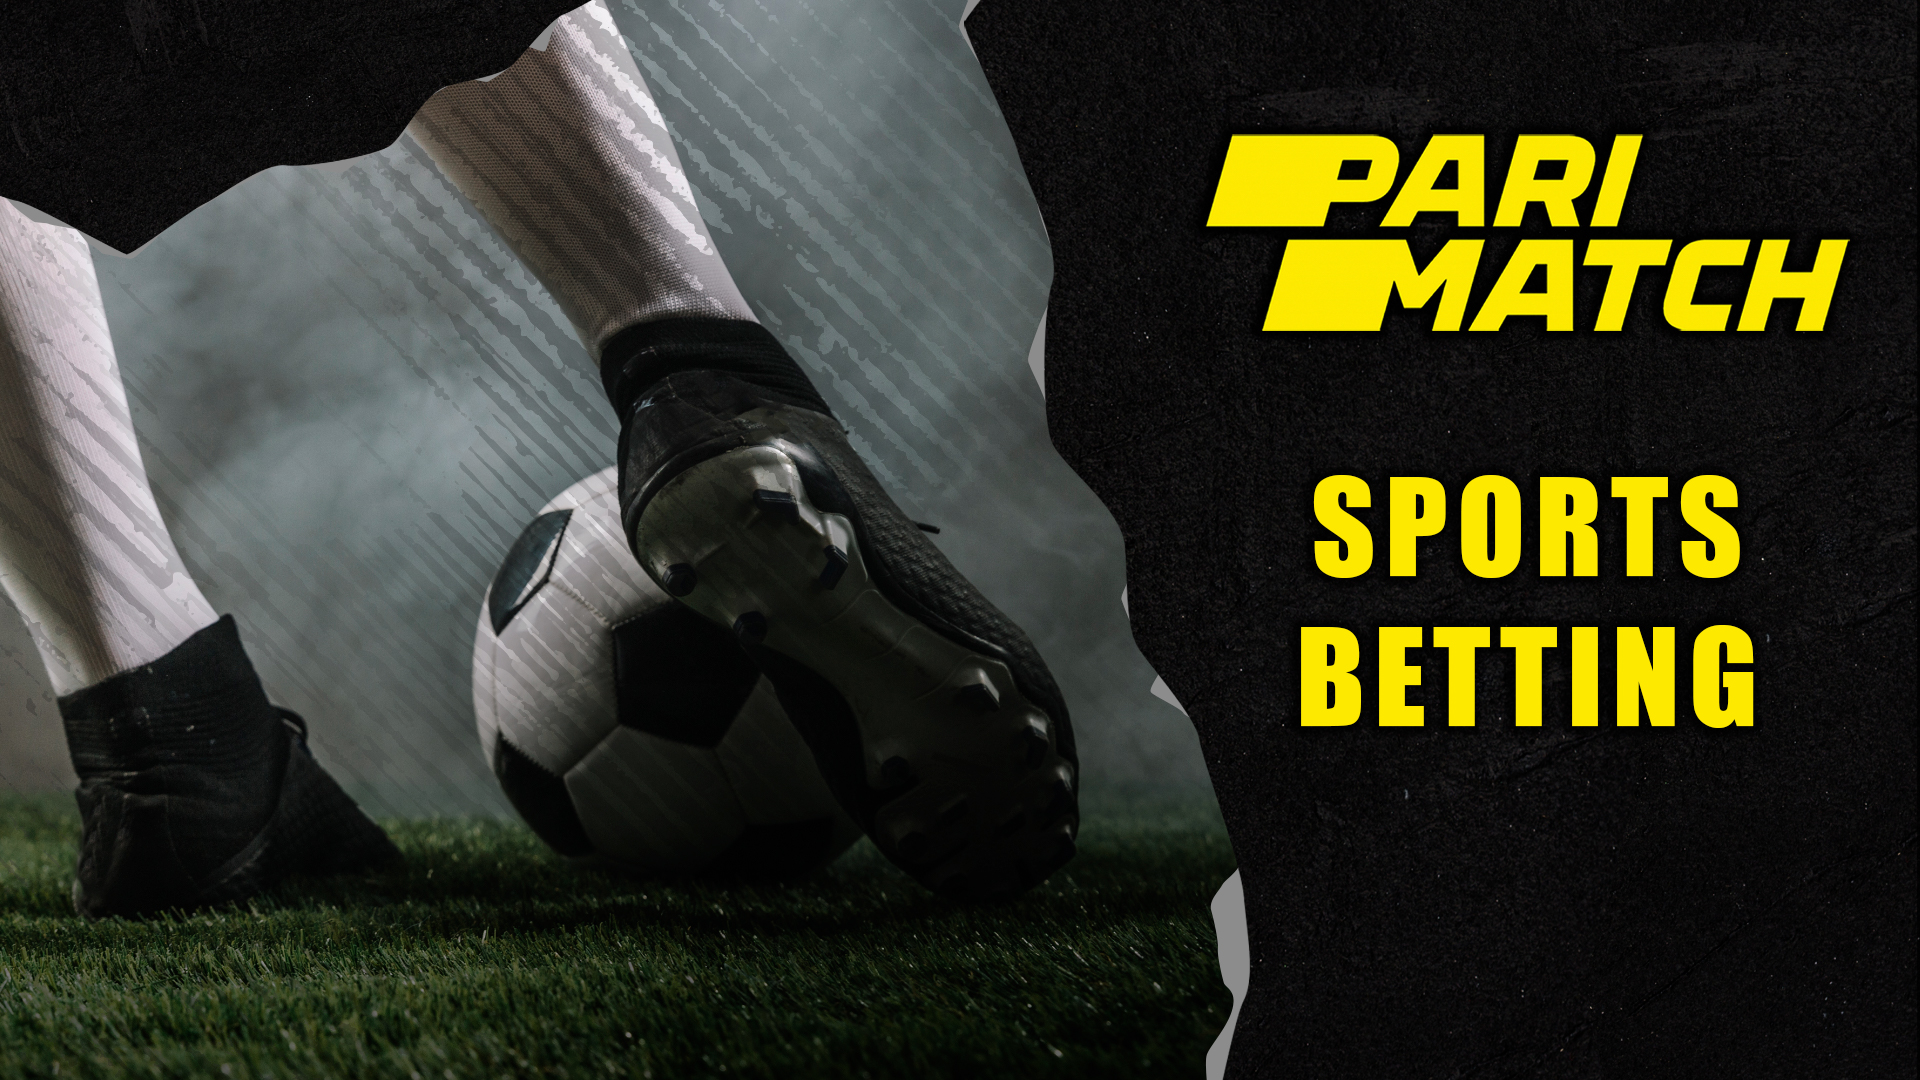 On Parimatch you can place bets on matches in cricket, football, tennis, and events of other popular sports disciplines.